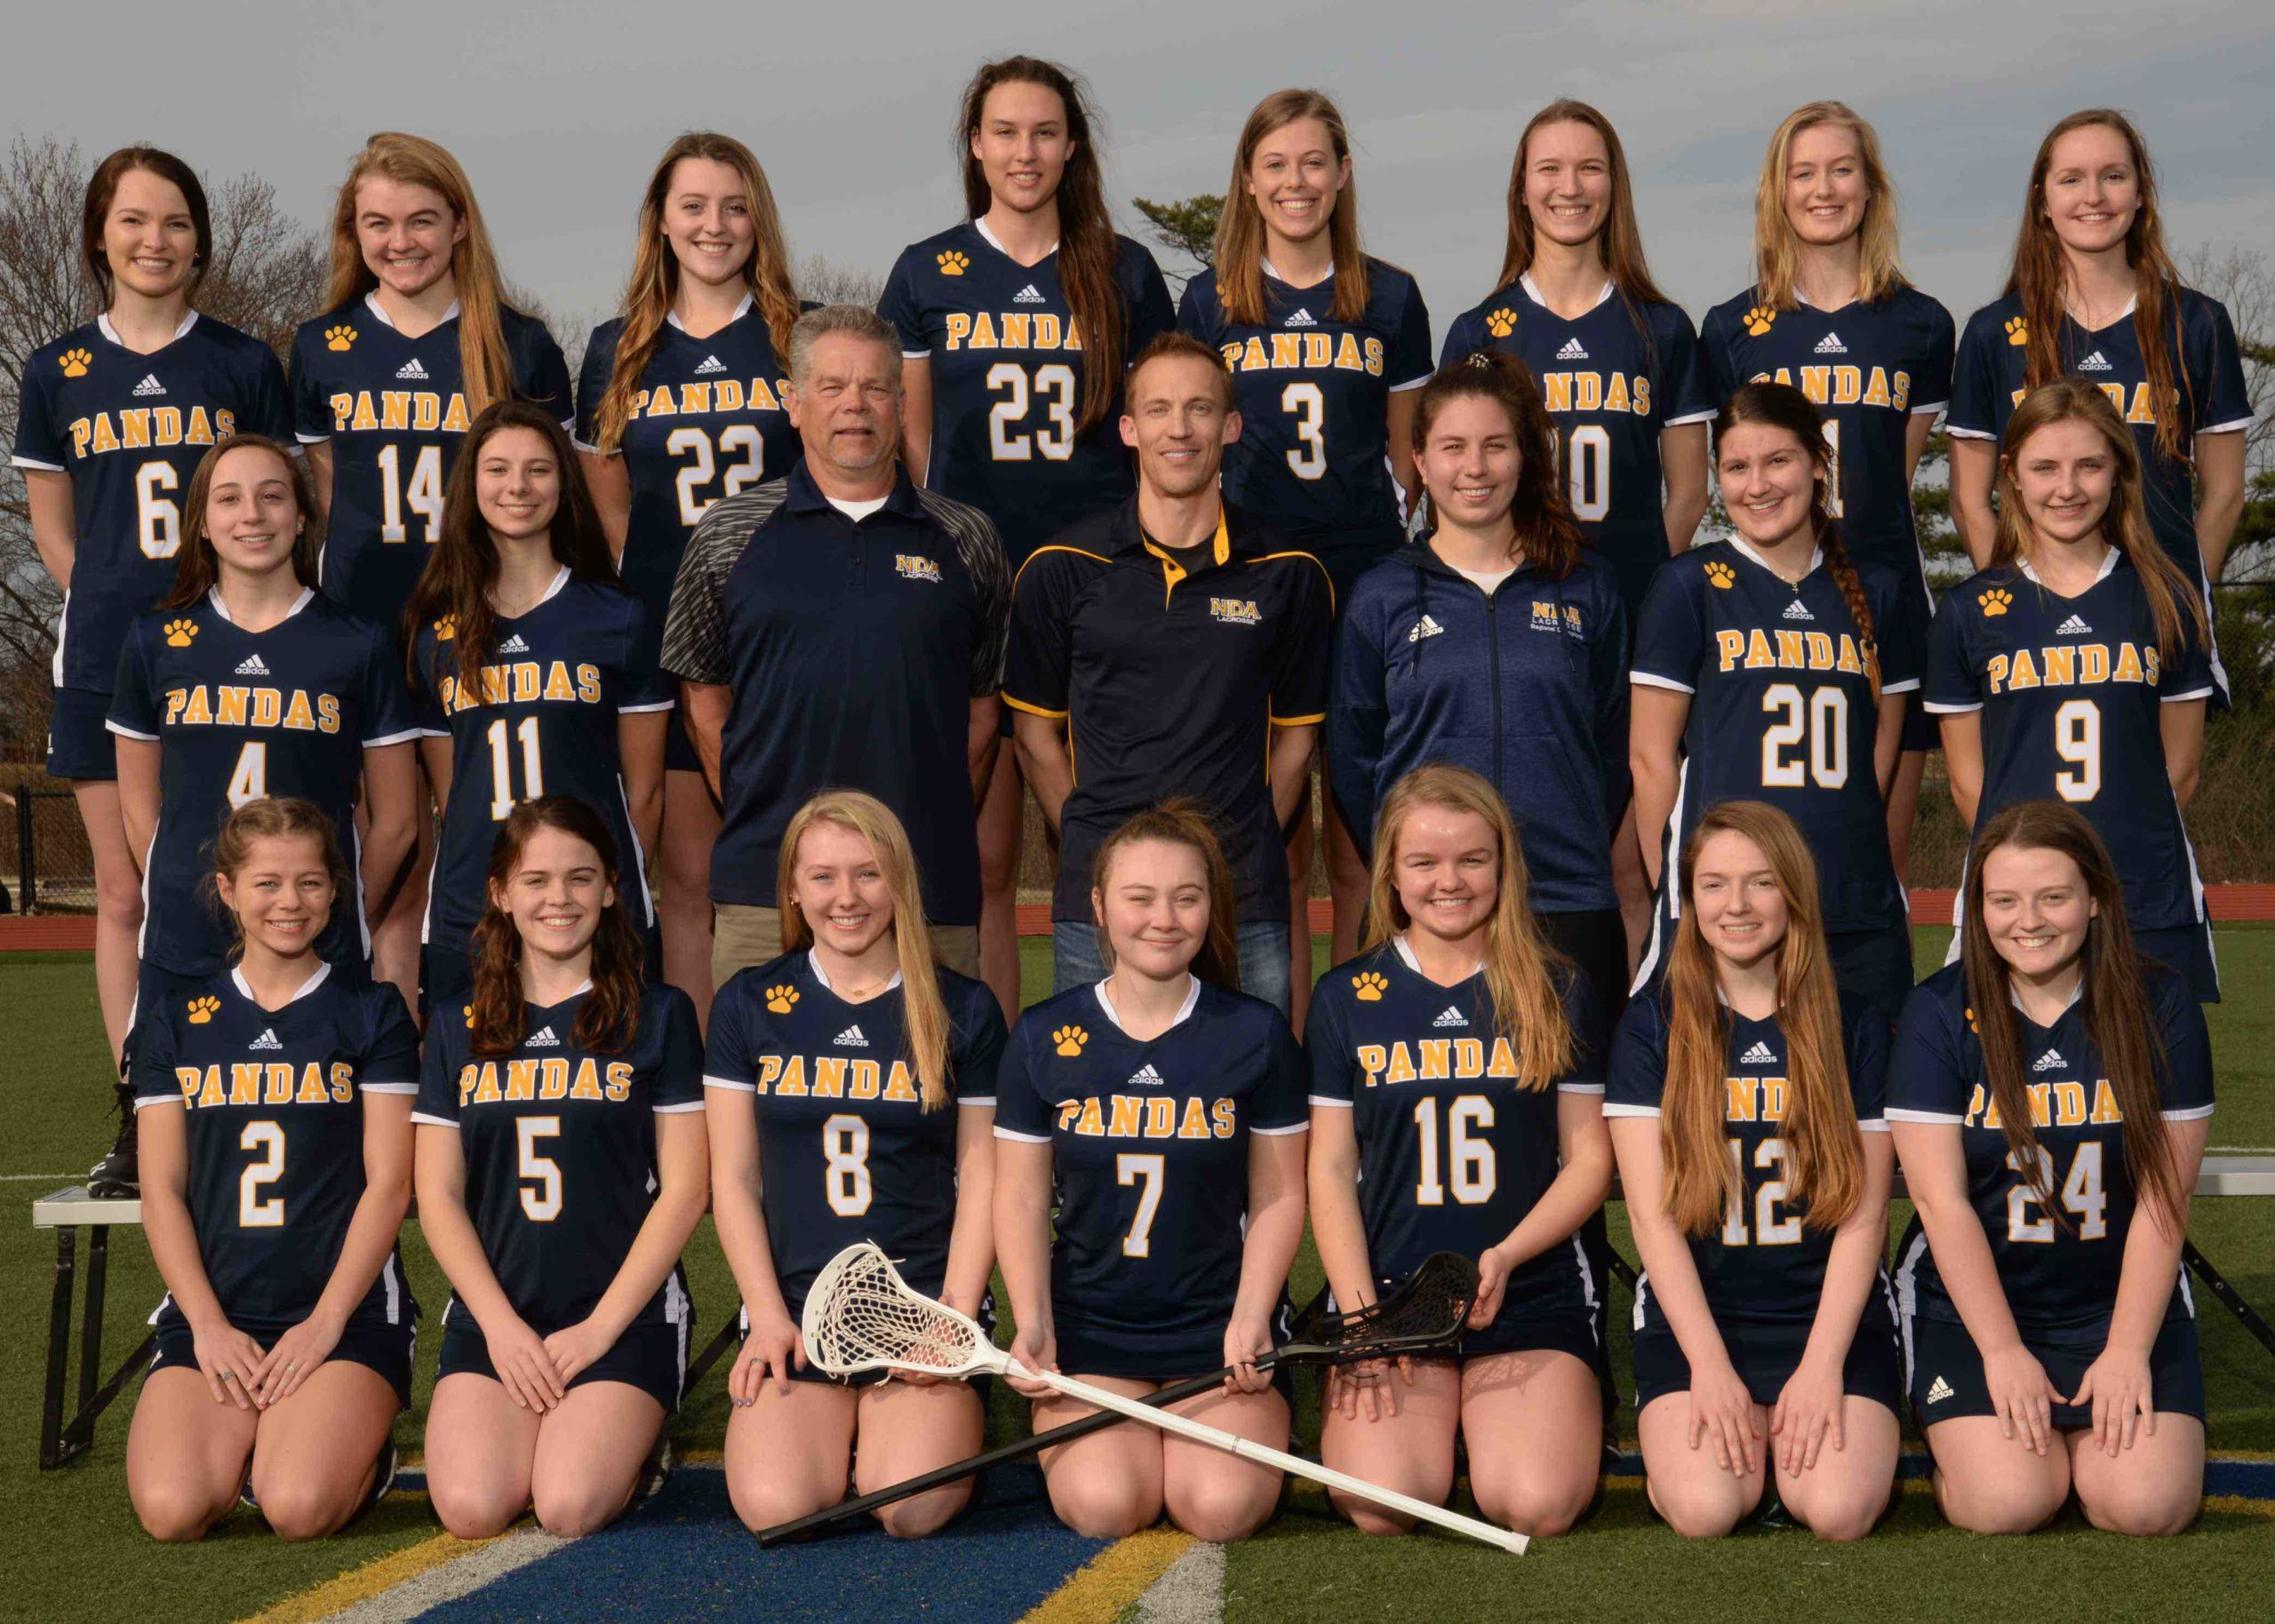 One of the lacrosse teams at Notre Dame Academy catholic all-girls school in Covington, Northern Kentucky.